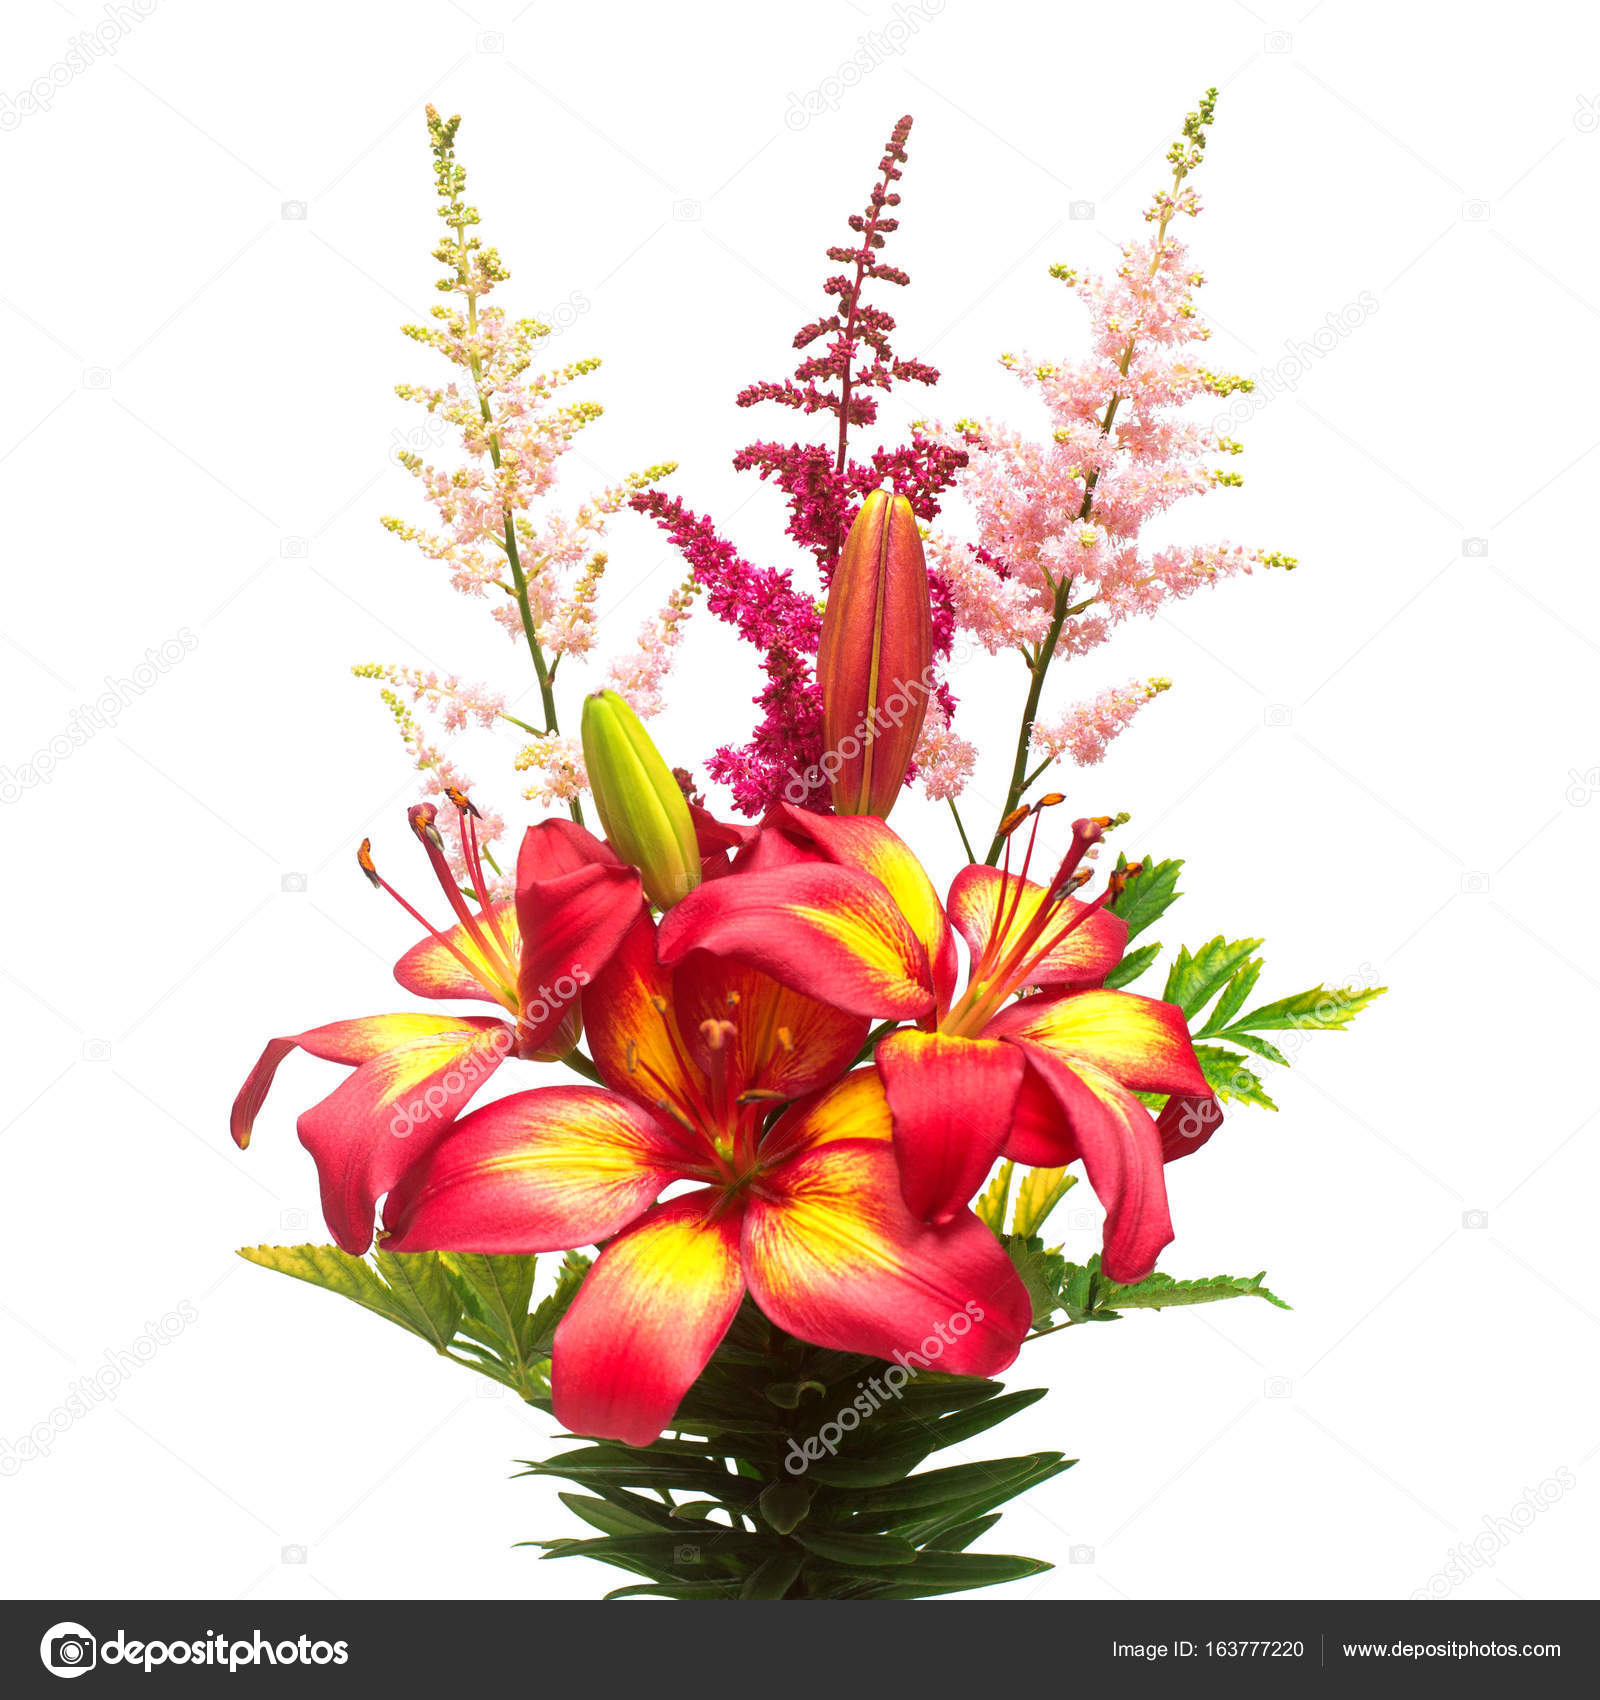 Flowers of lily and astilbe in a bouquet isolated on white backg flowers of lily and astilbe in a bouquet isolated on white backg stock photo izmirmasajfo